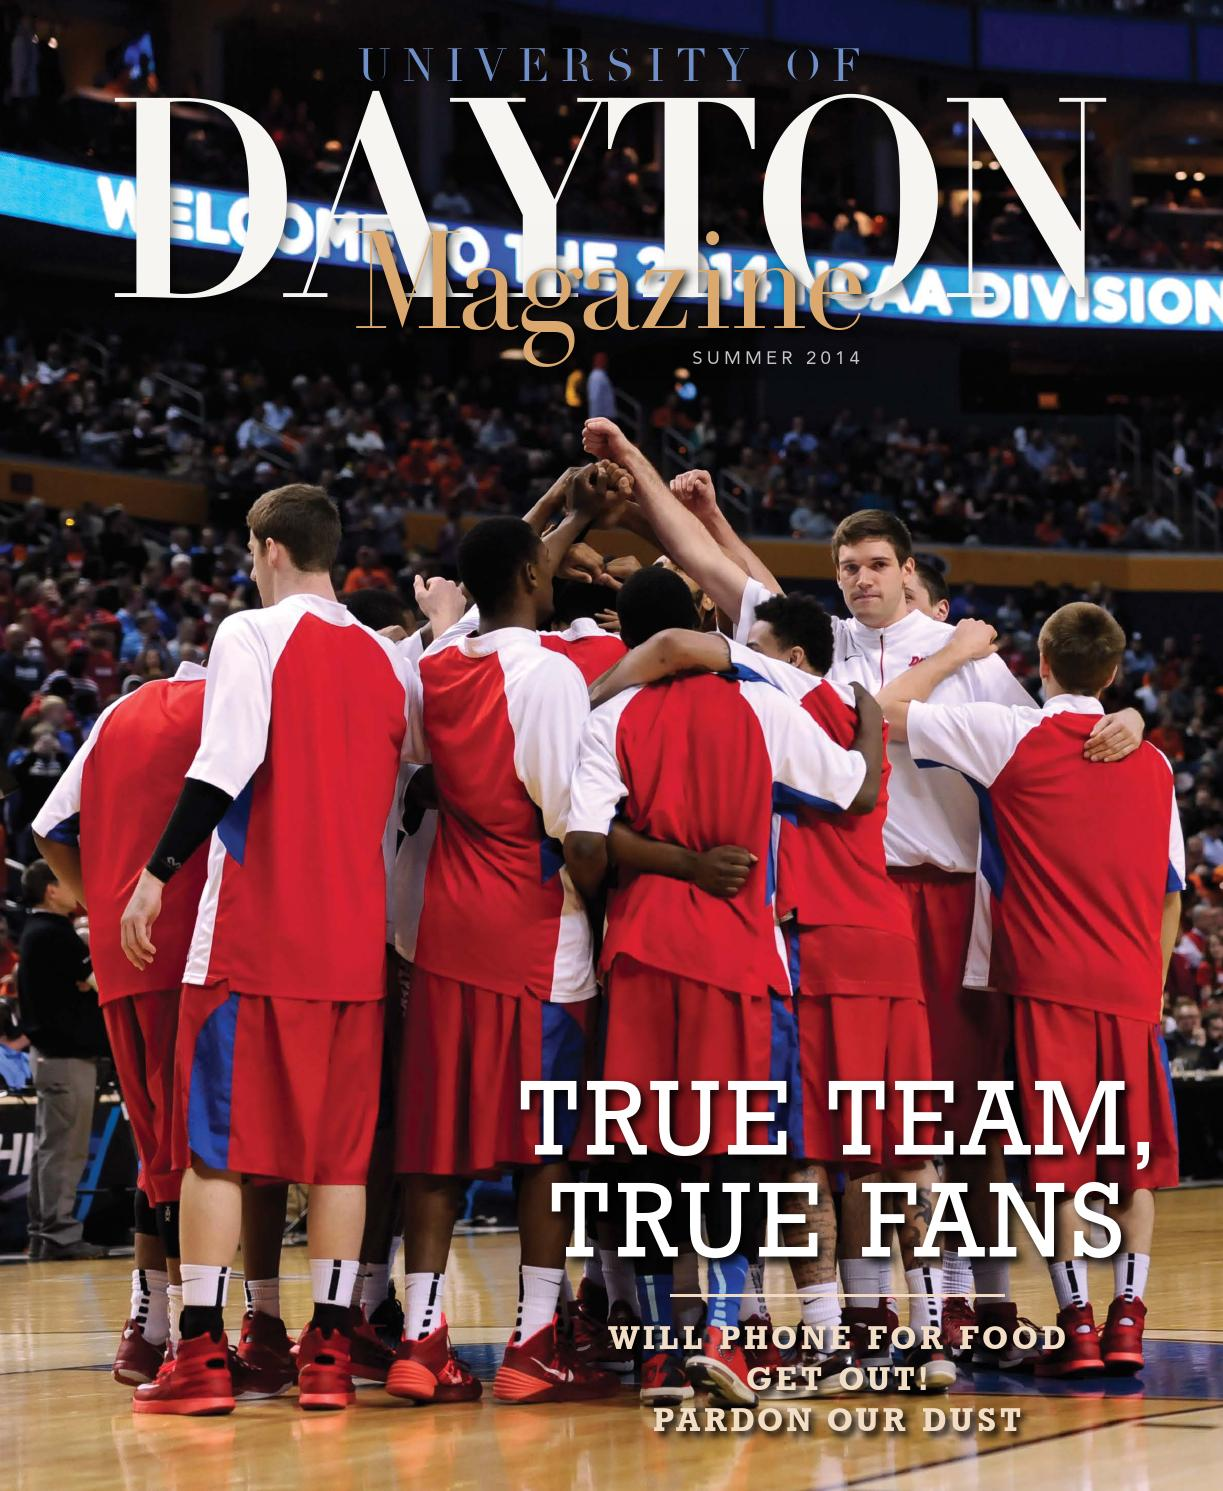 a9f2b236d51 University of Dayton Magazine